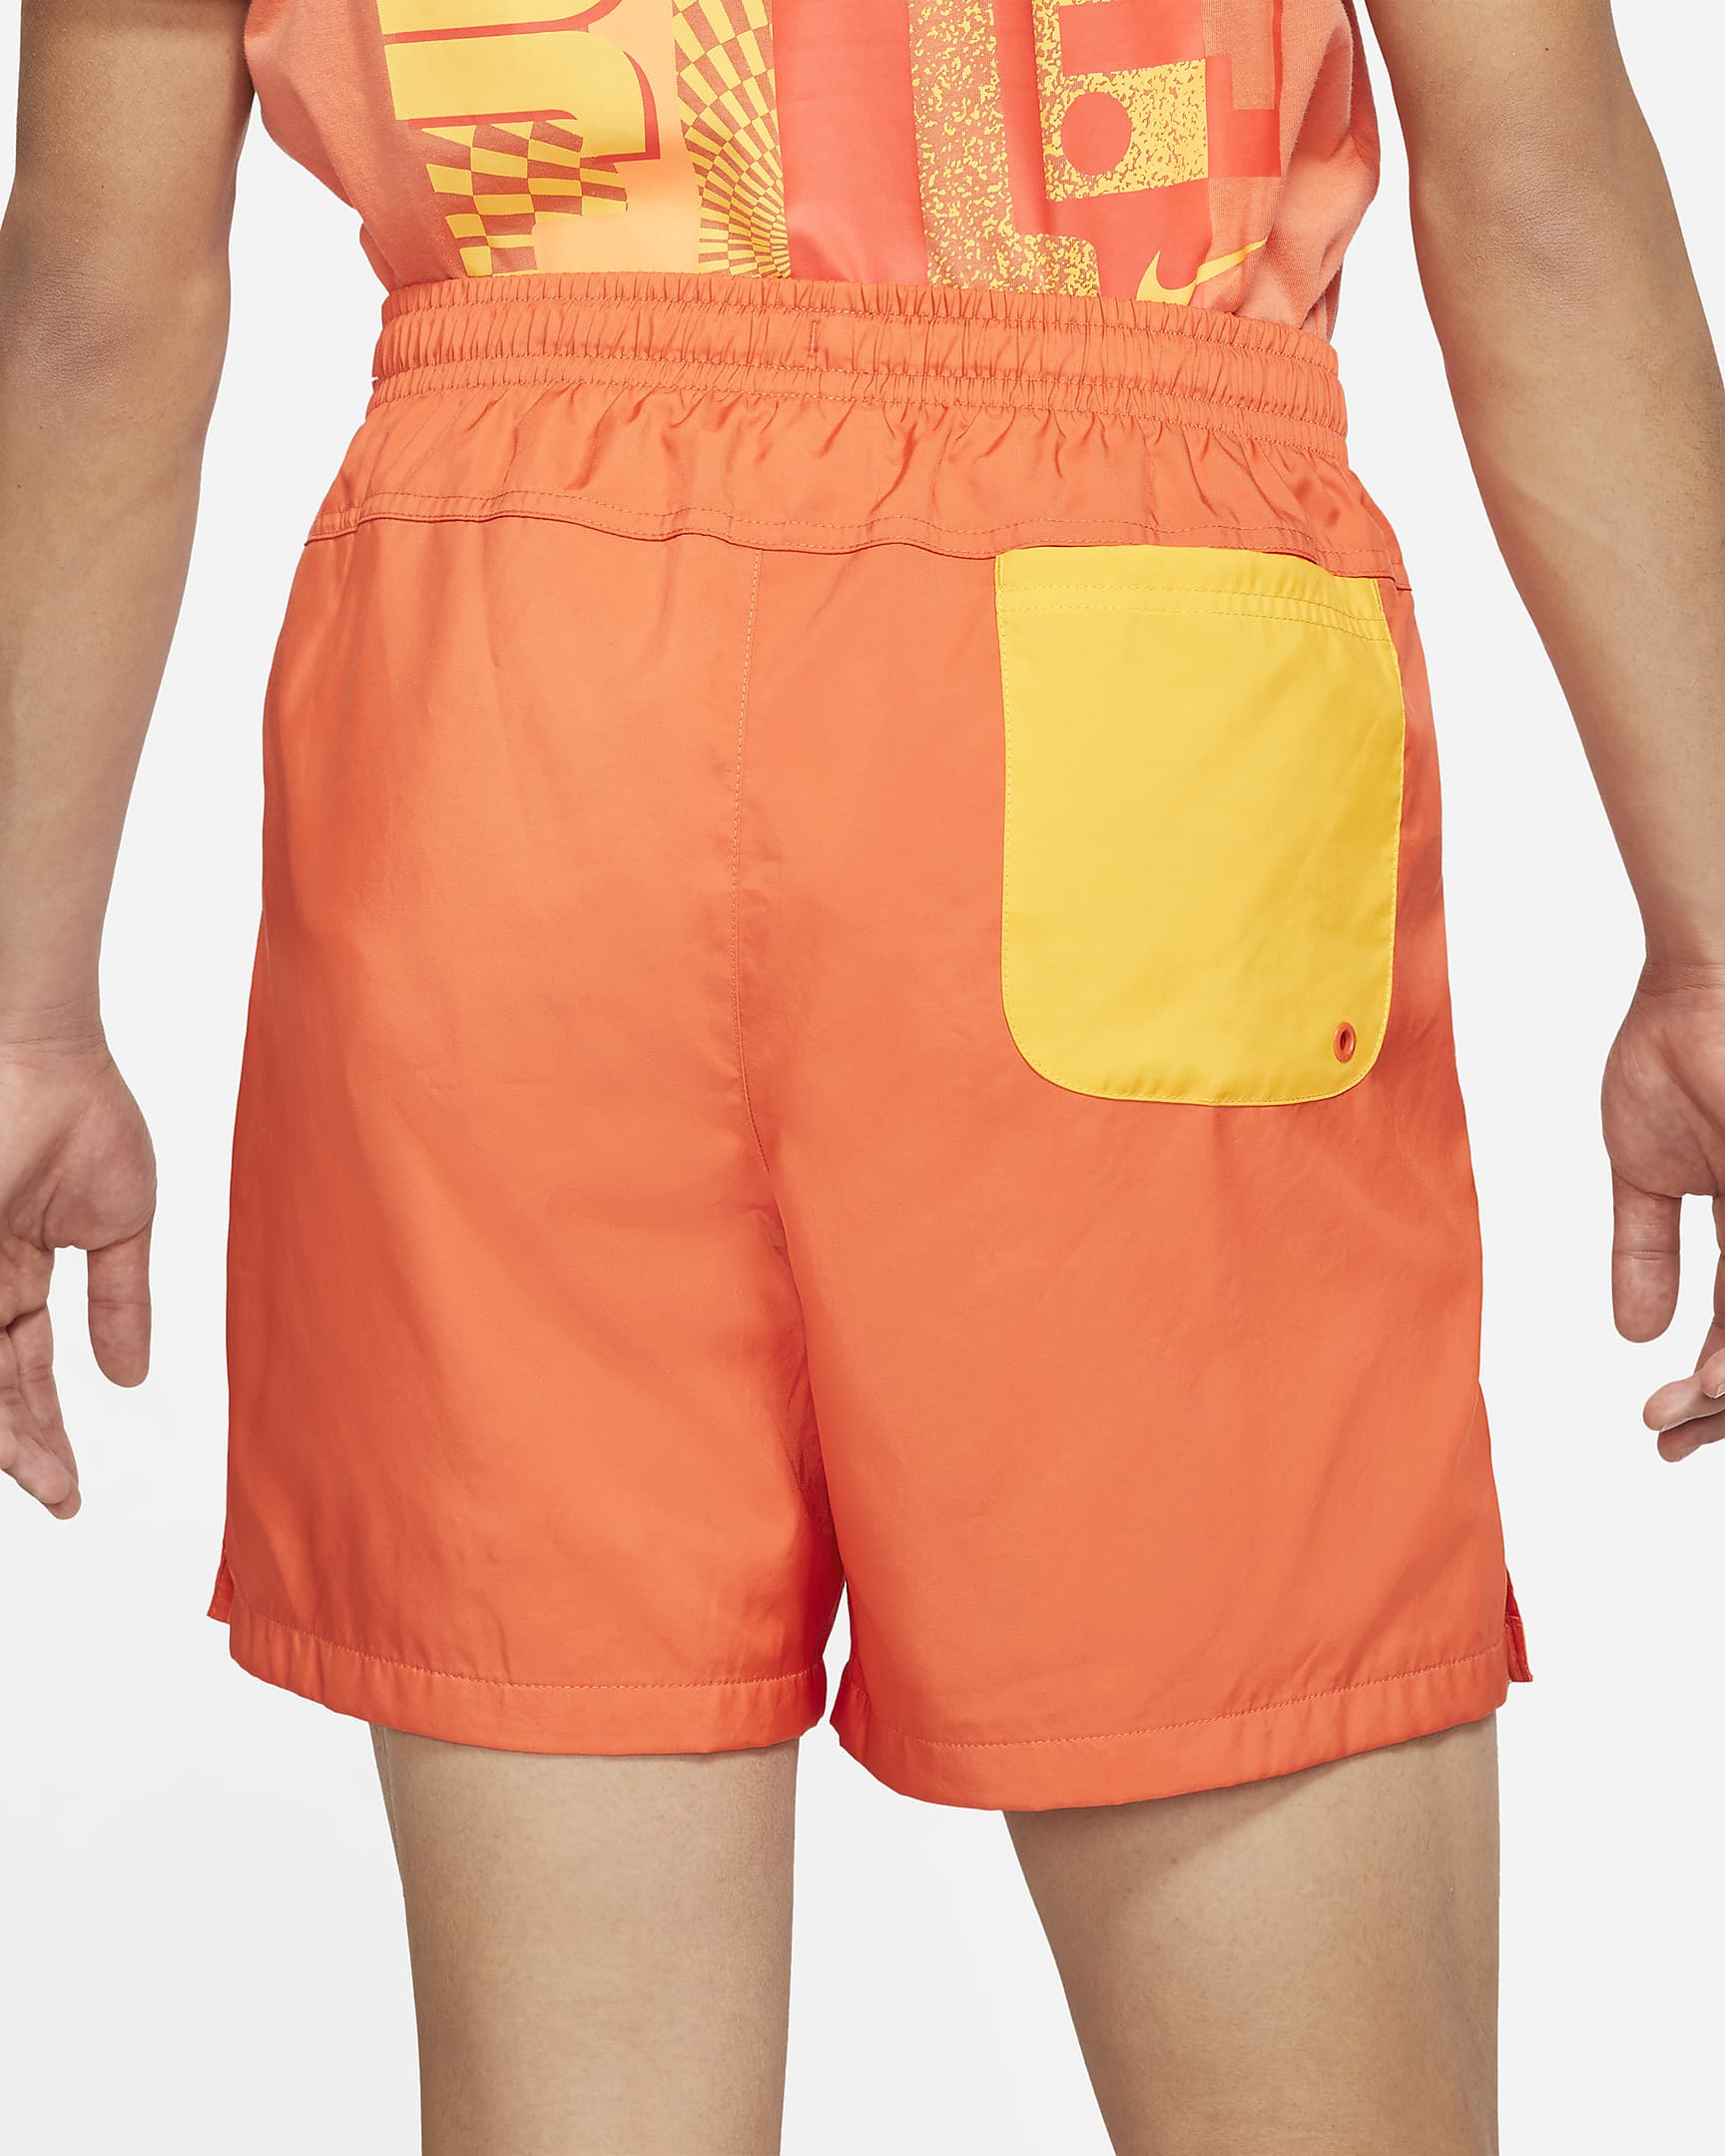 sportswear-mens-woven-shorts-VFft3H-1.png